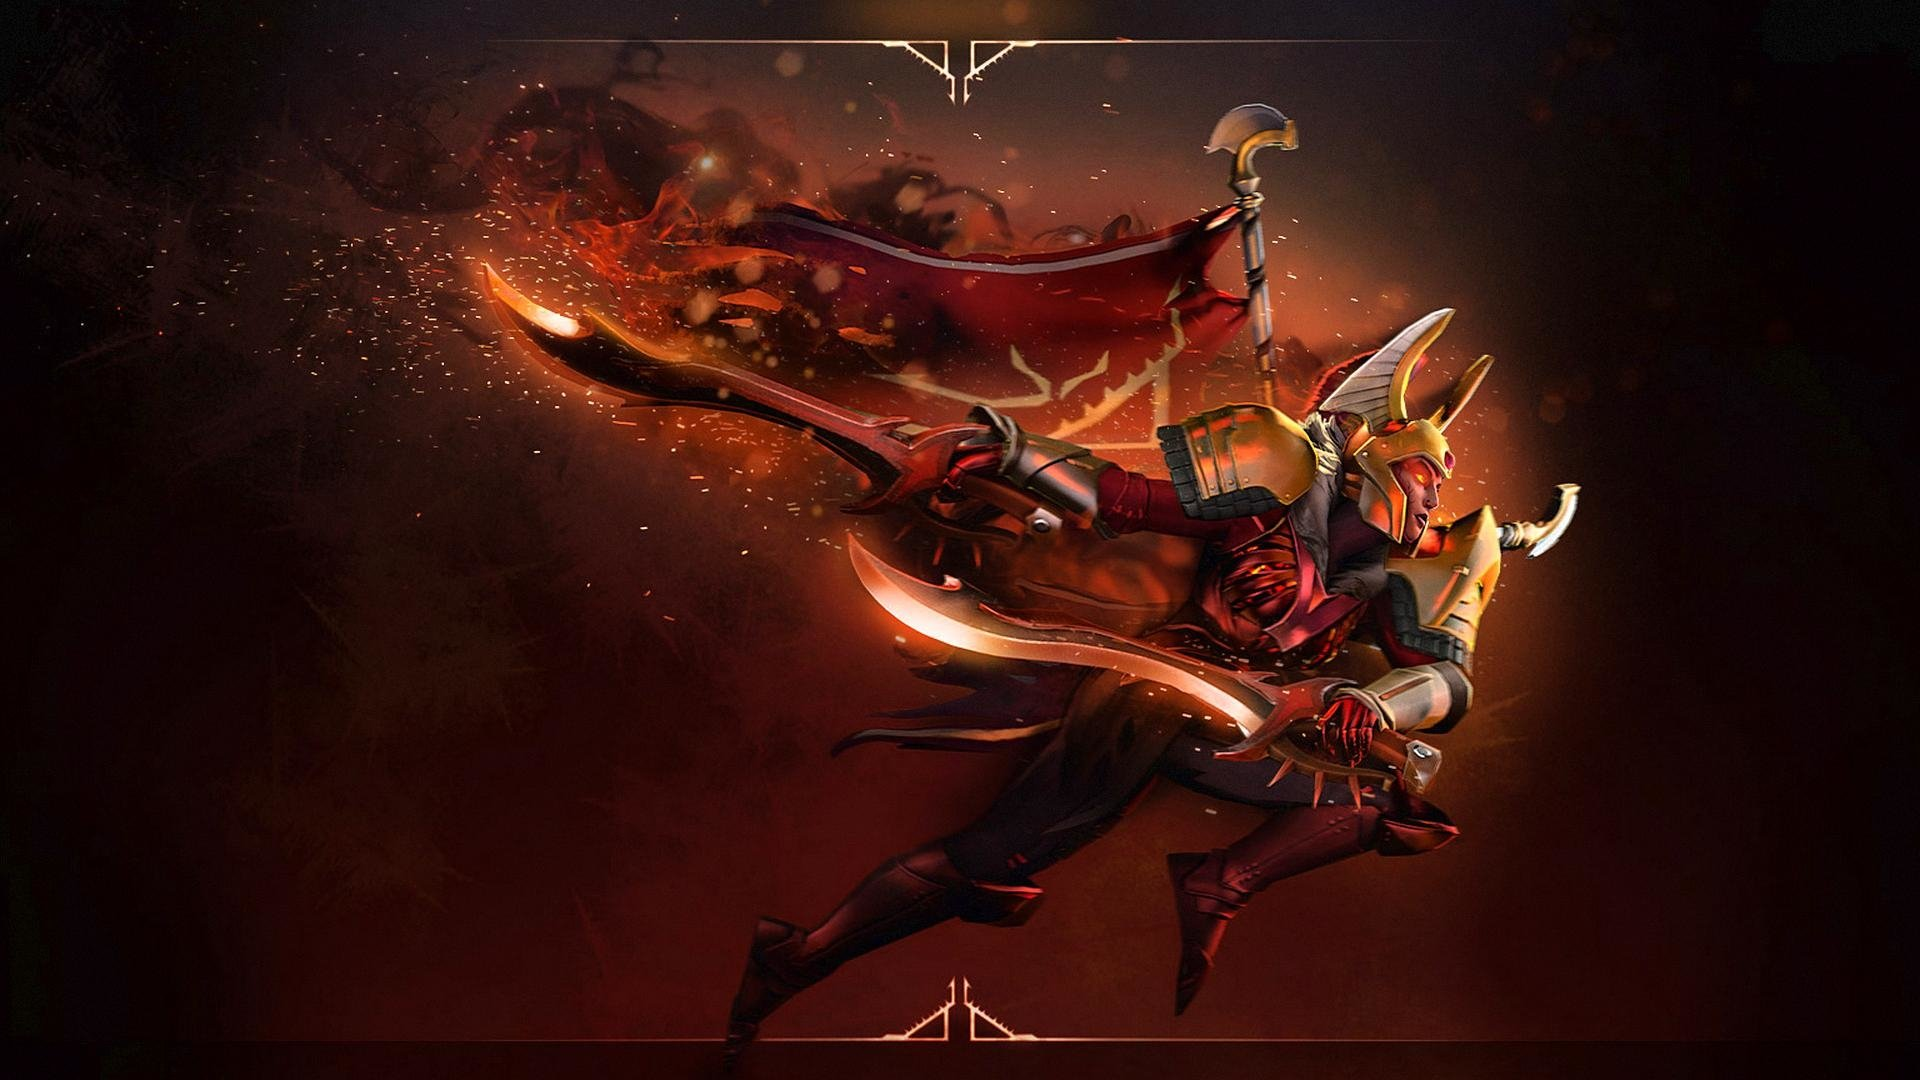 DotA 2 Full HD Wallpaper And Background Image 1920x1080 ID648444